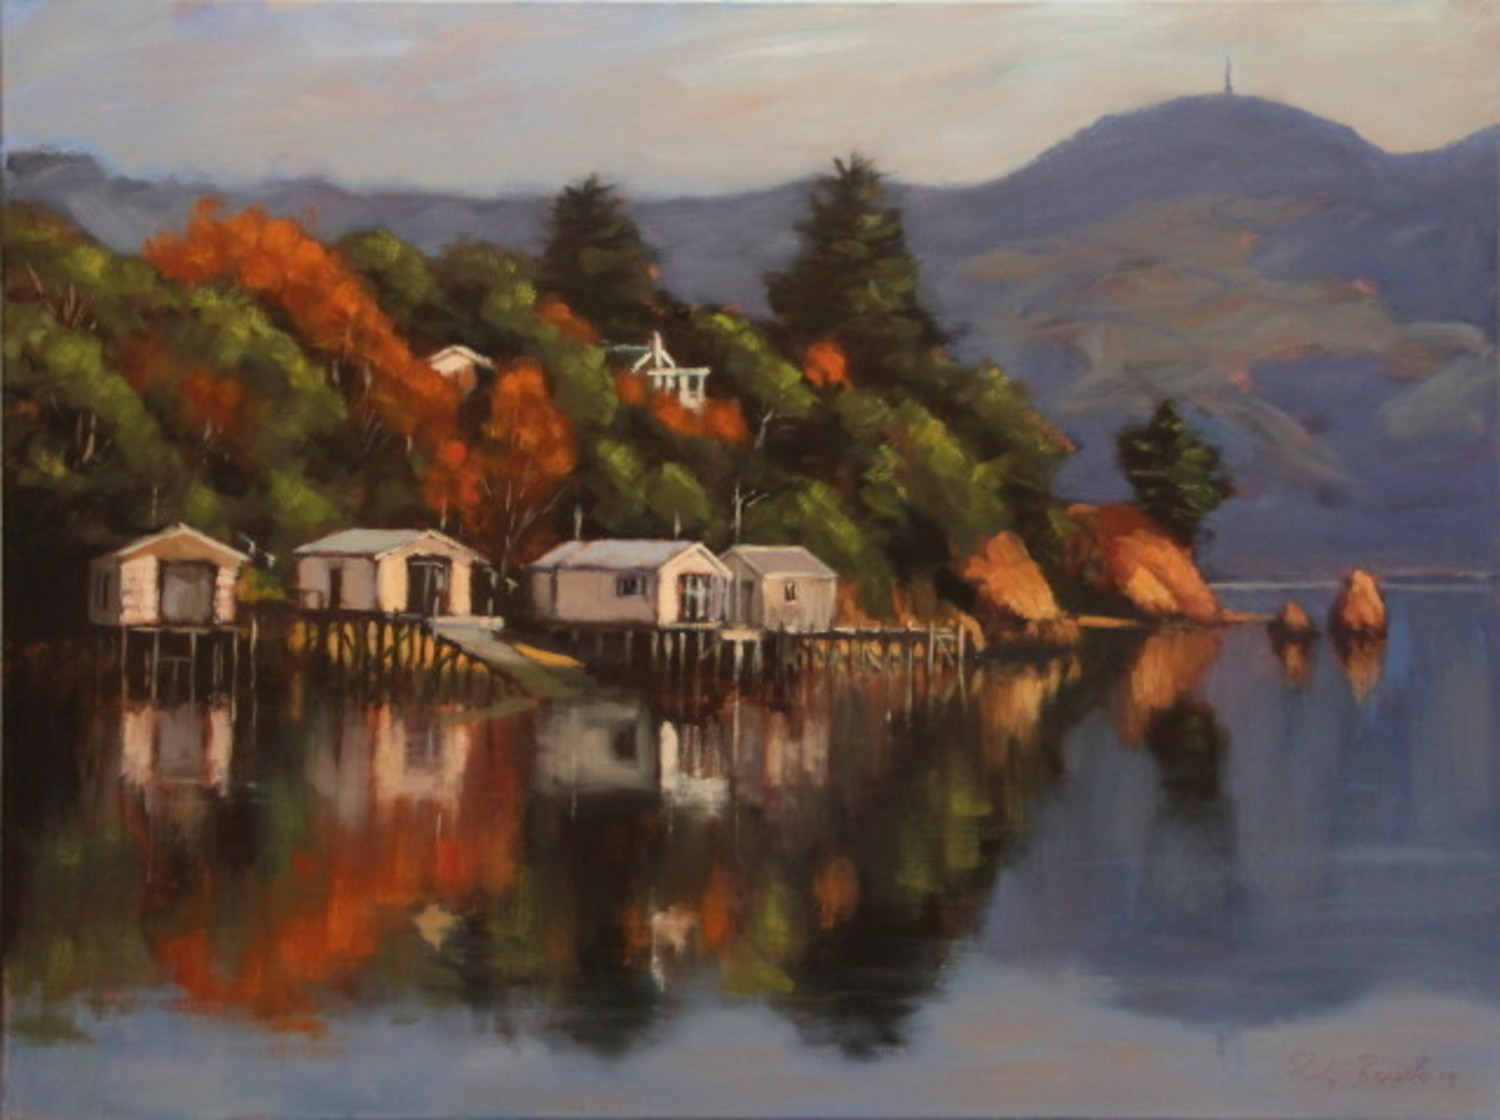 Boatsheds, Turnbulls Bay, Otago Harbour (10276)